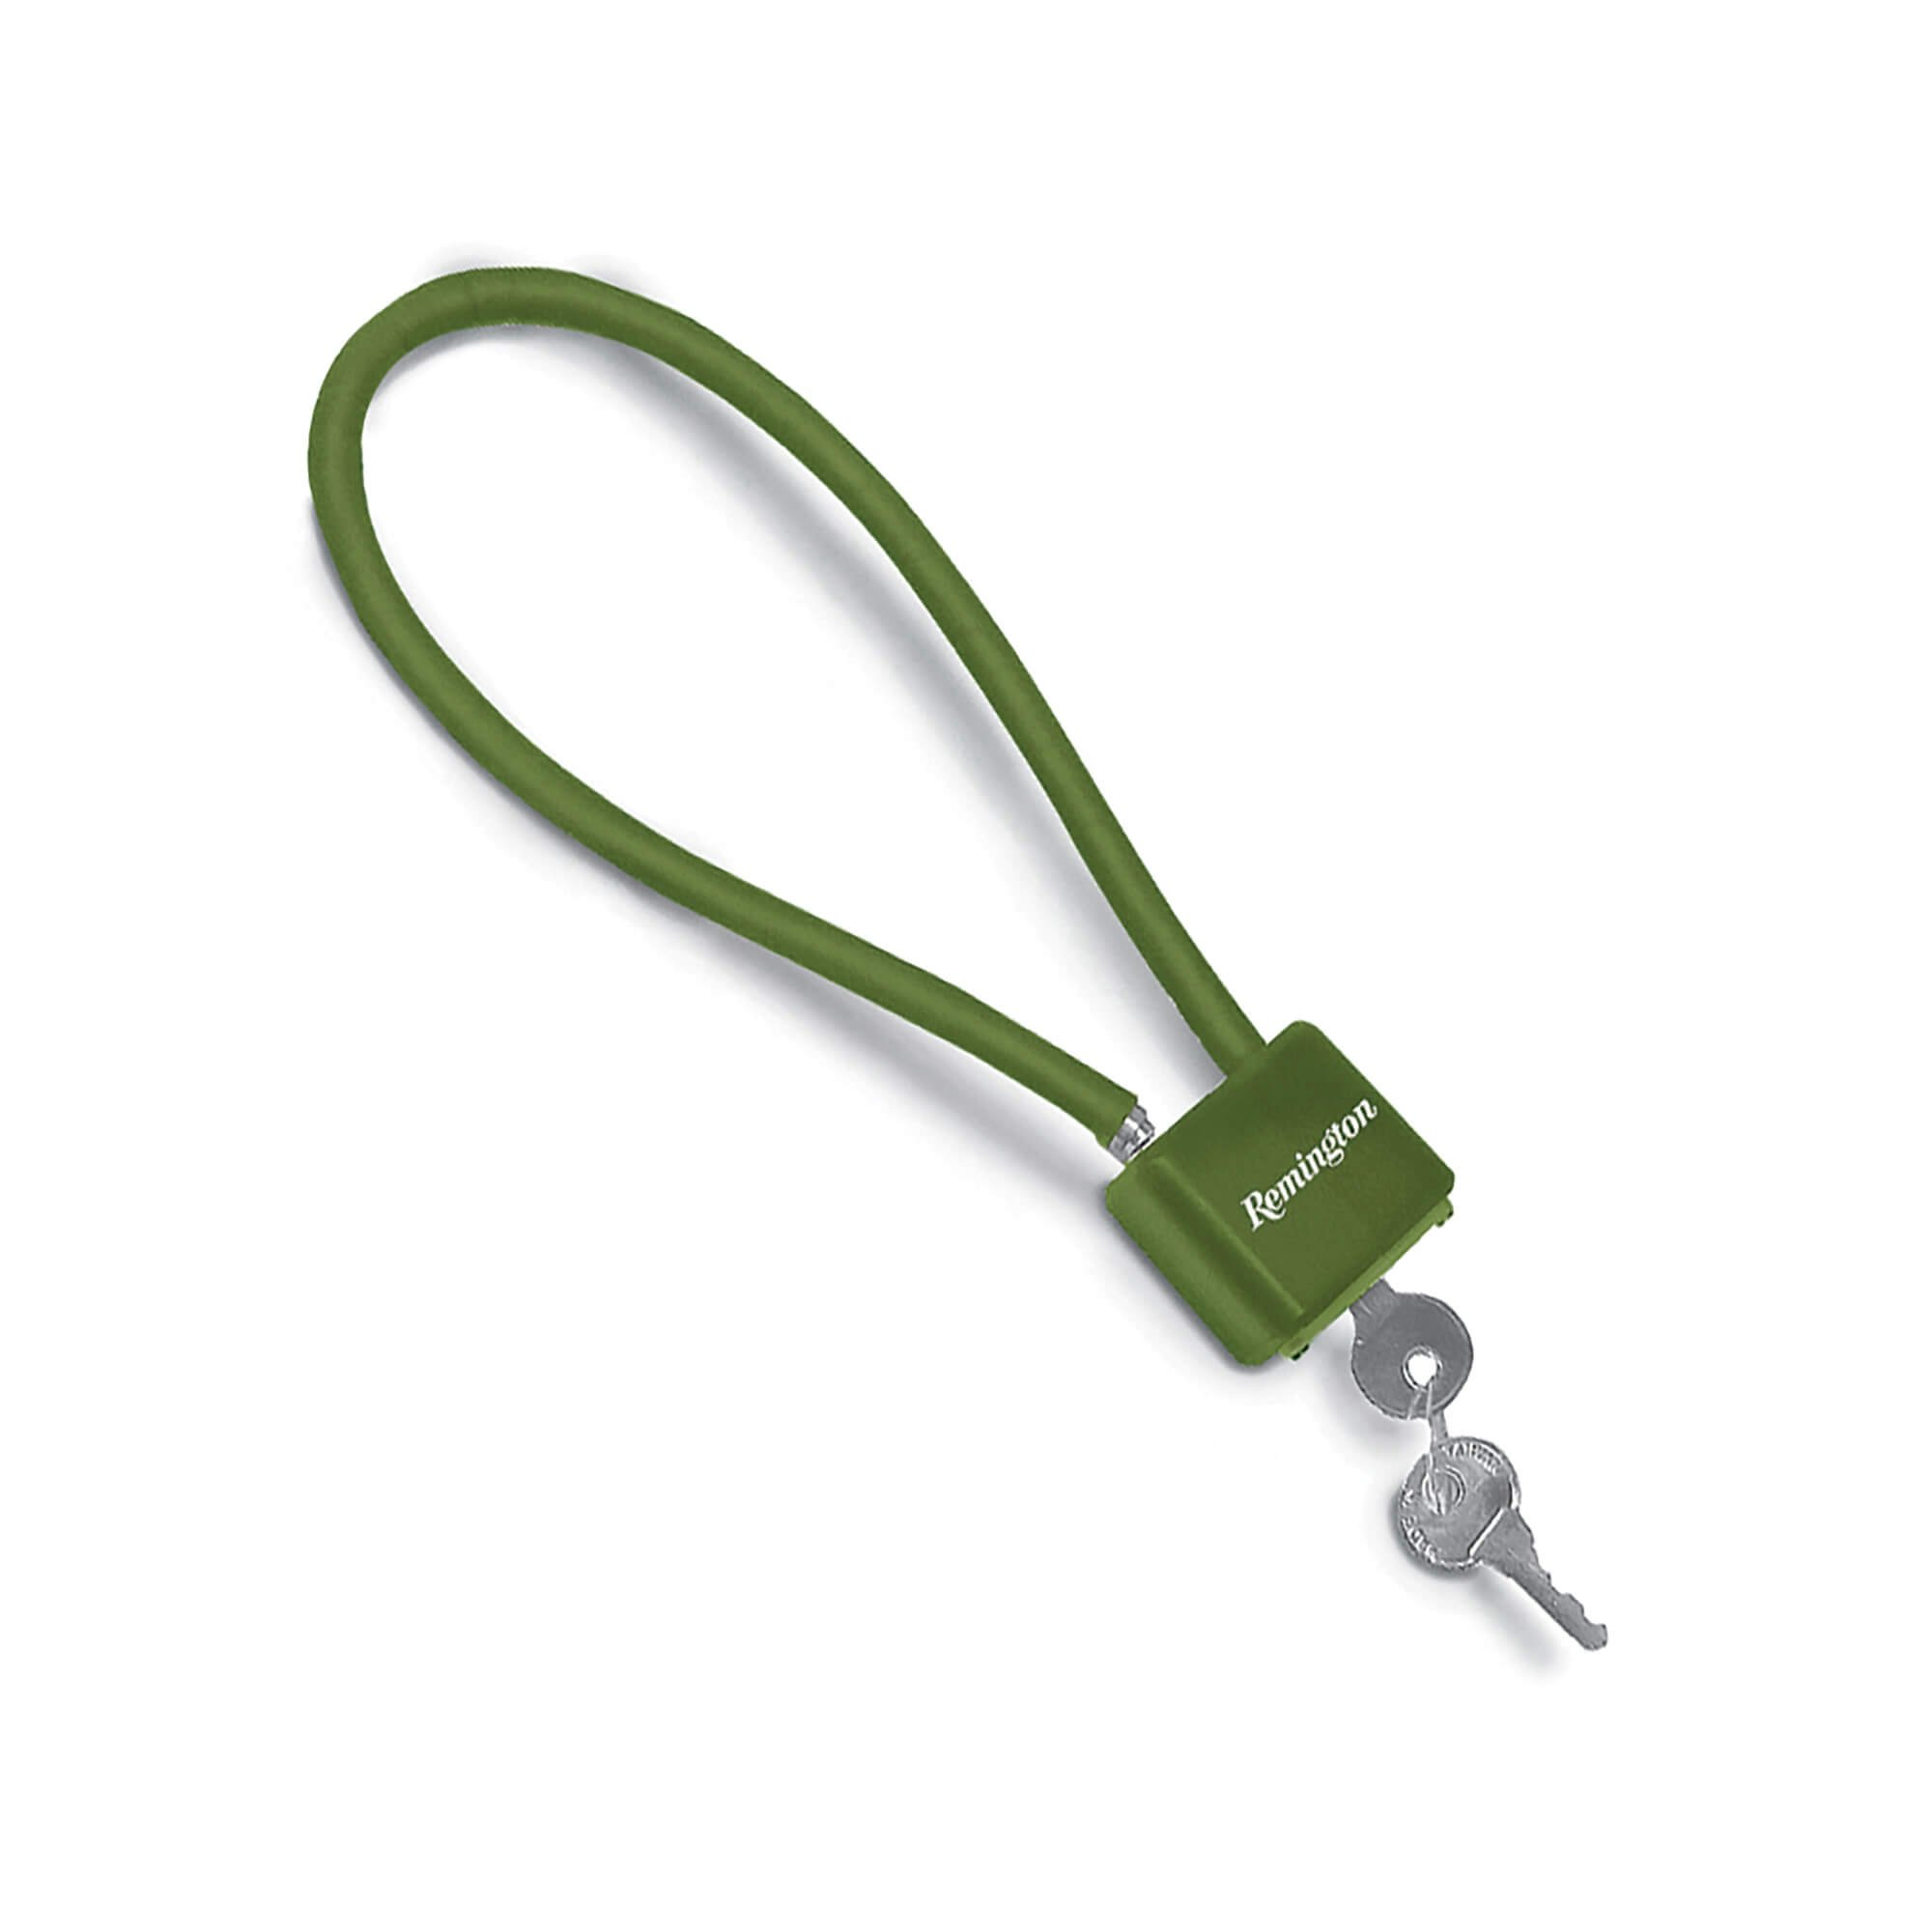 Remington Safety Cable Lock (18364)